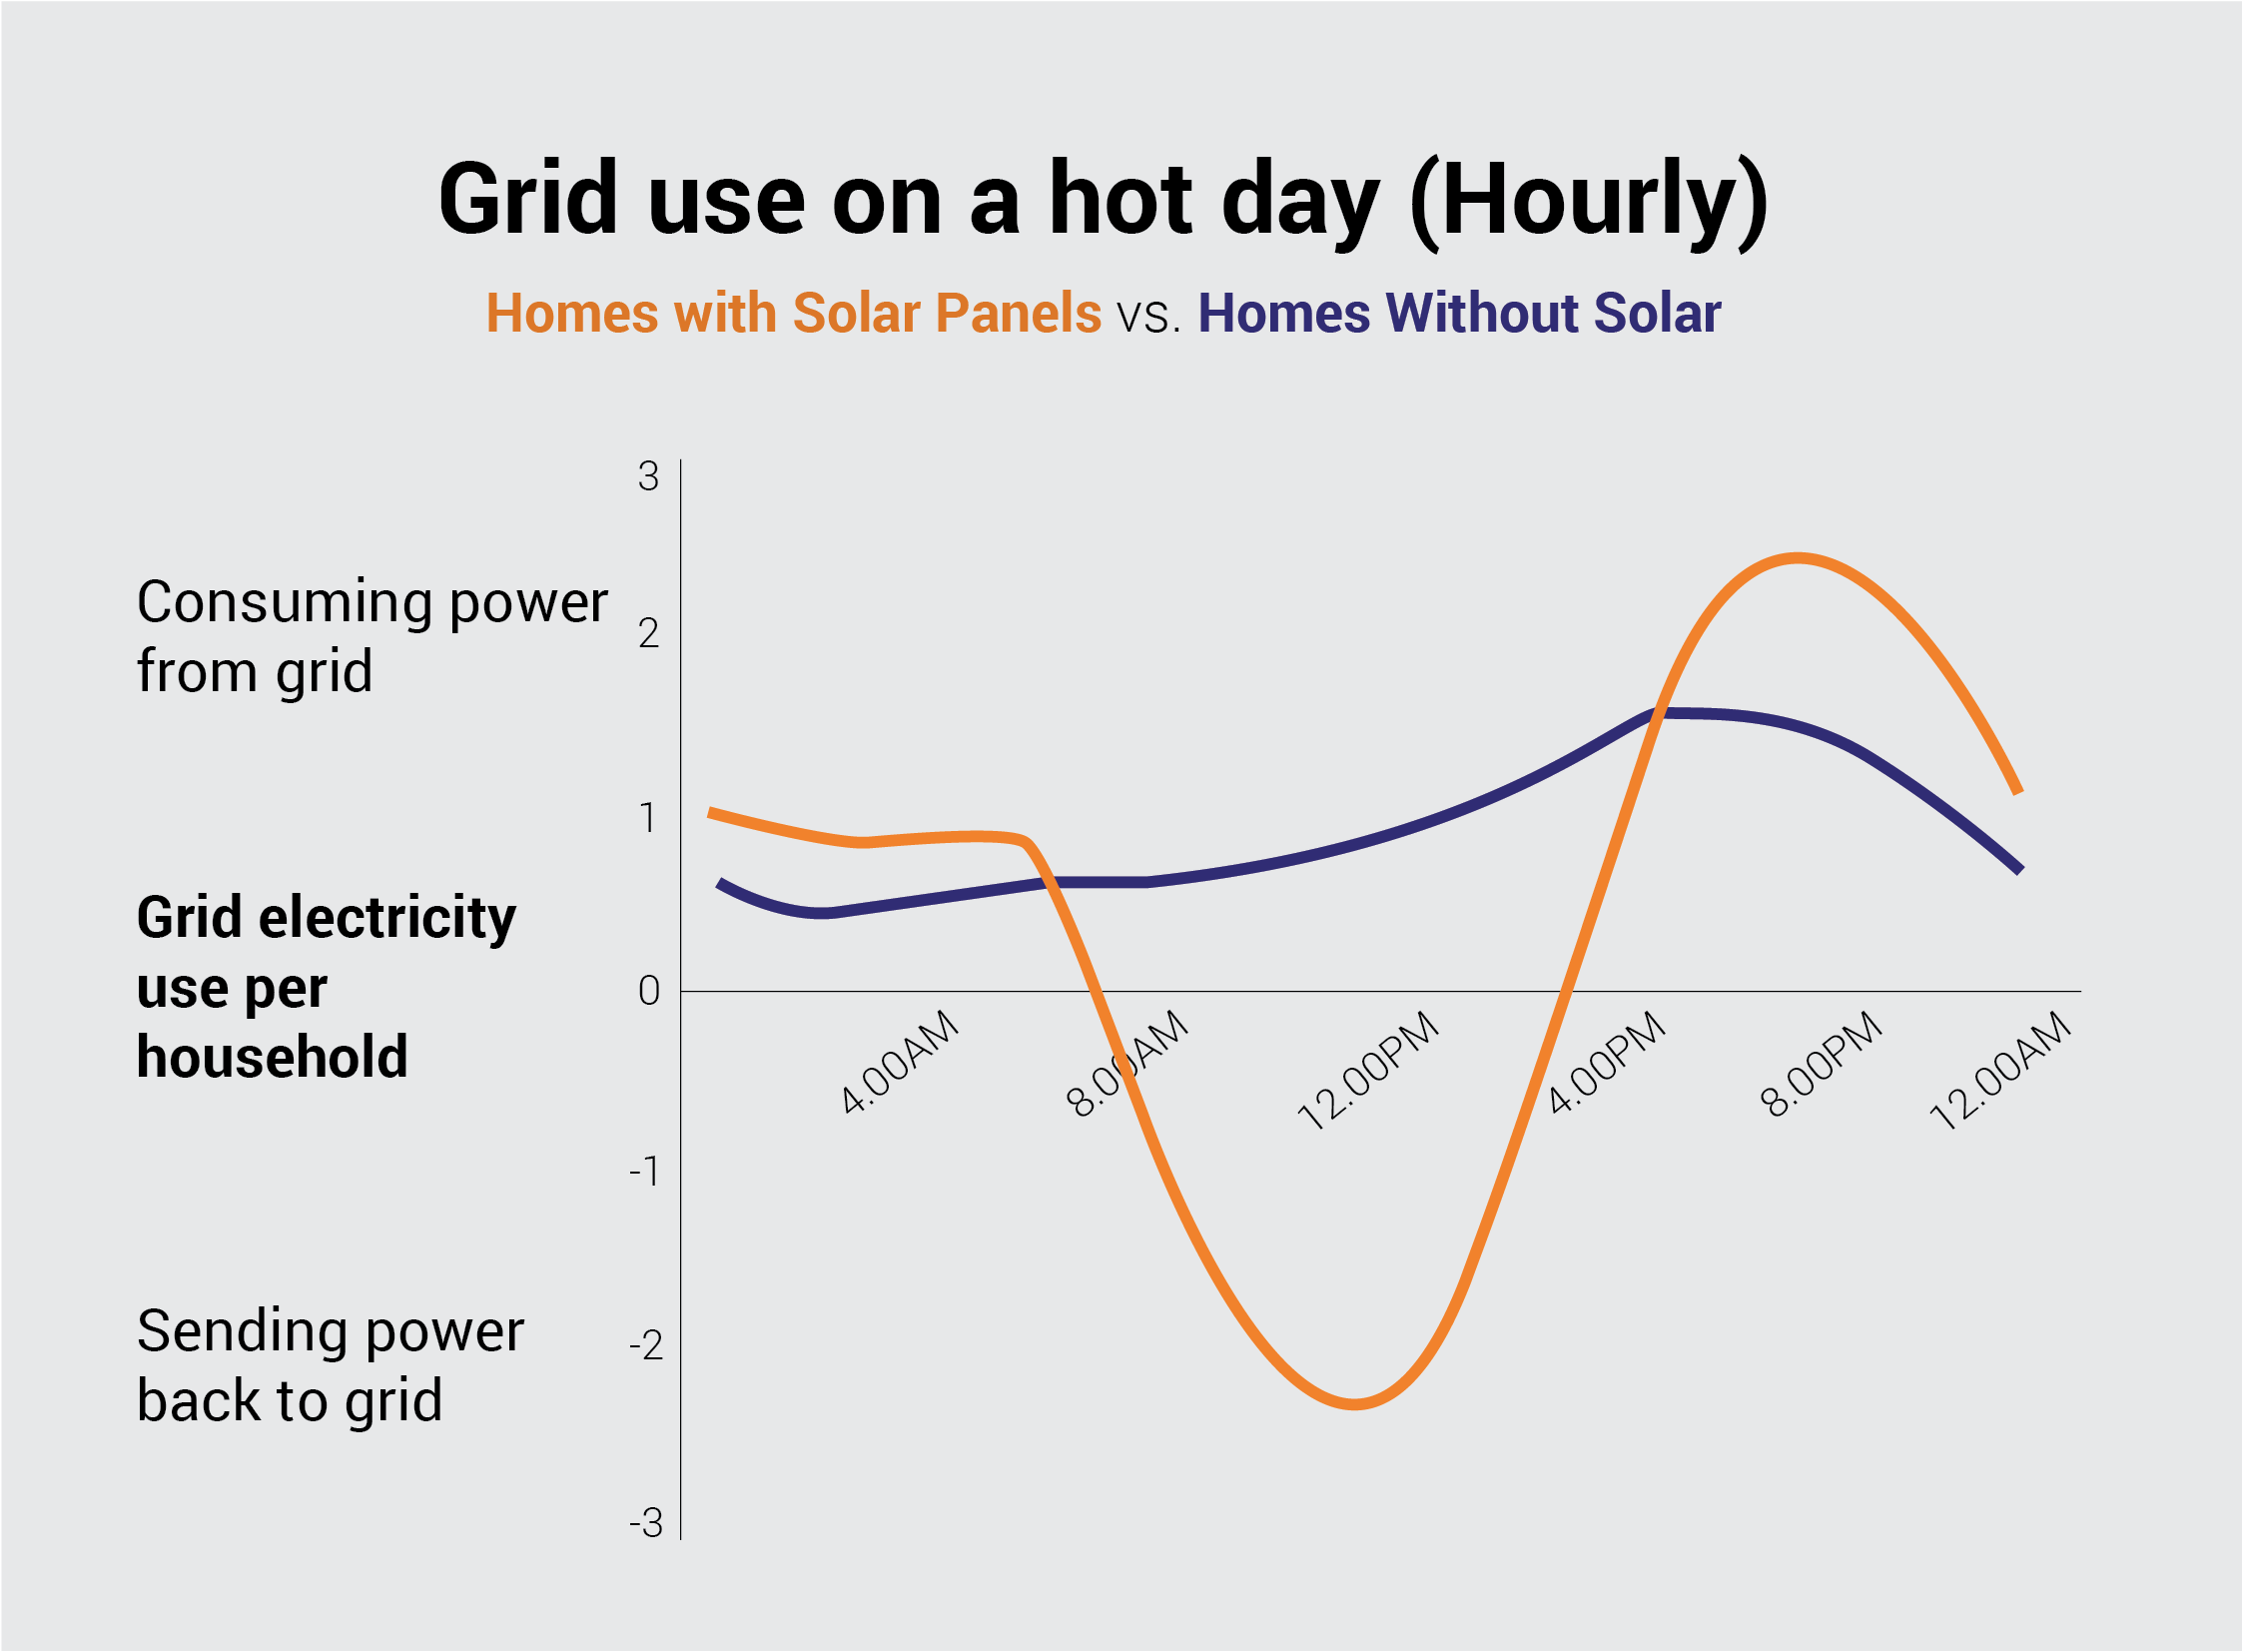 Solar vs Non-Solar: Hourly grid electric use on a hot day in the west.